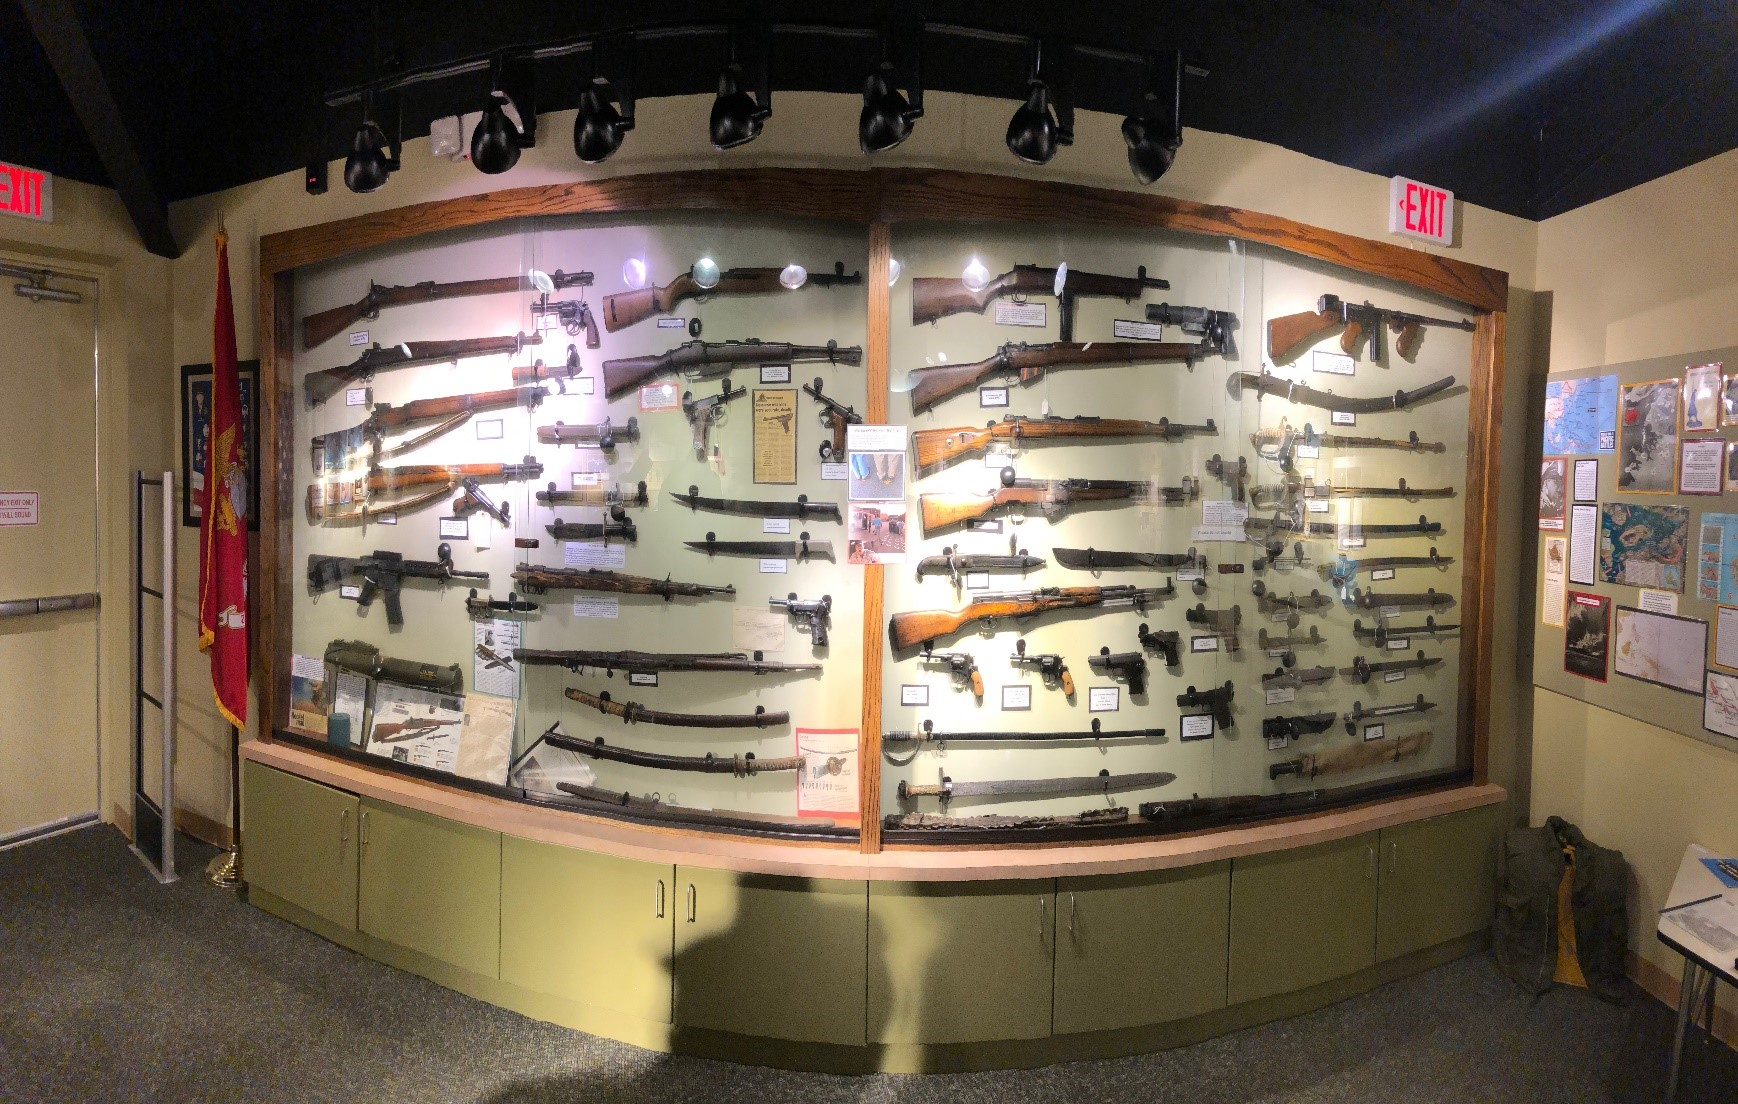 Shown here are weapons used in various wars.